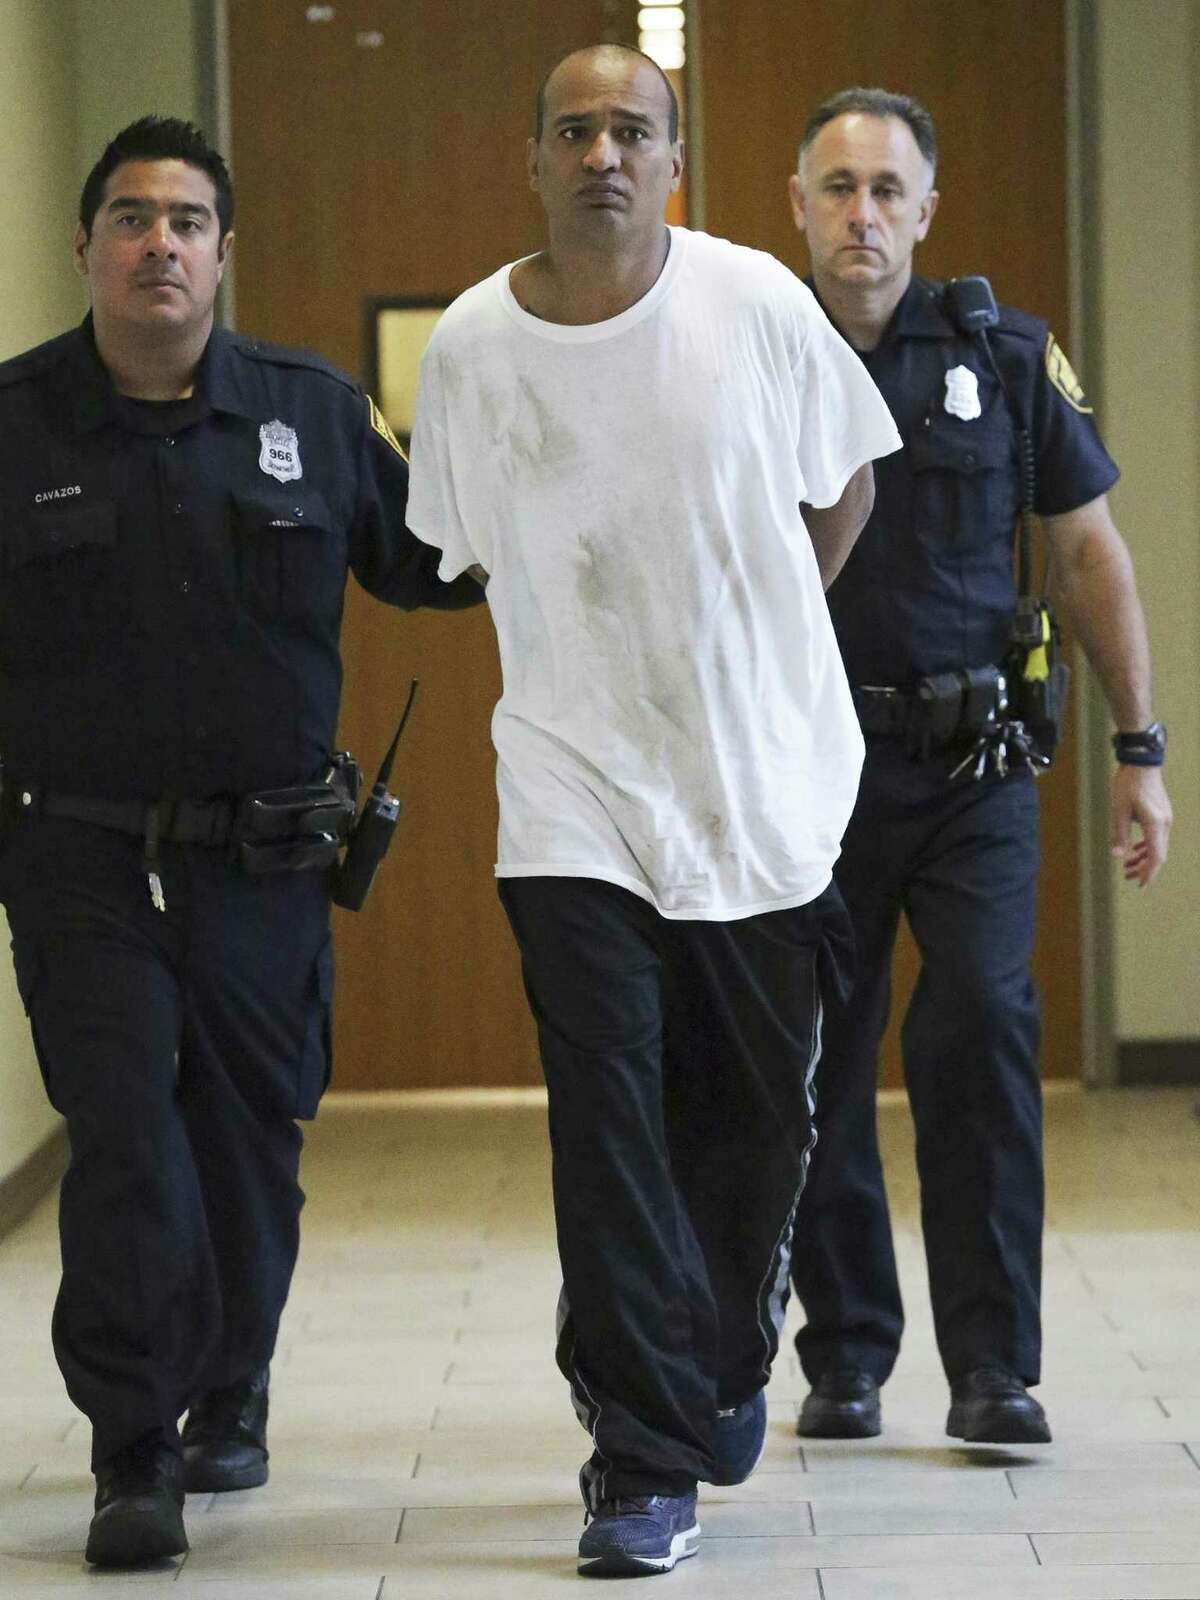 James Edward Striblin is led out of police headquarters after his arrest on July 27, 2016